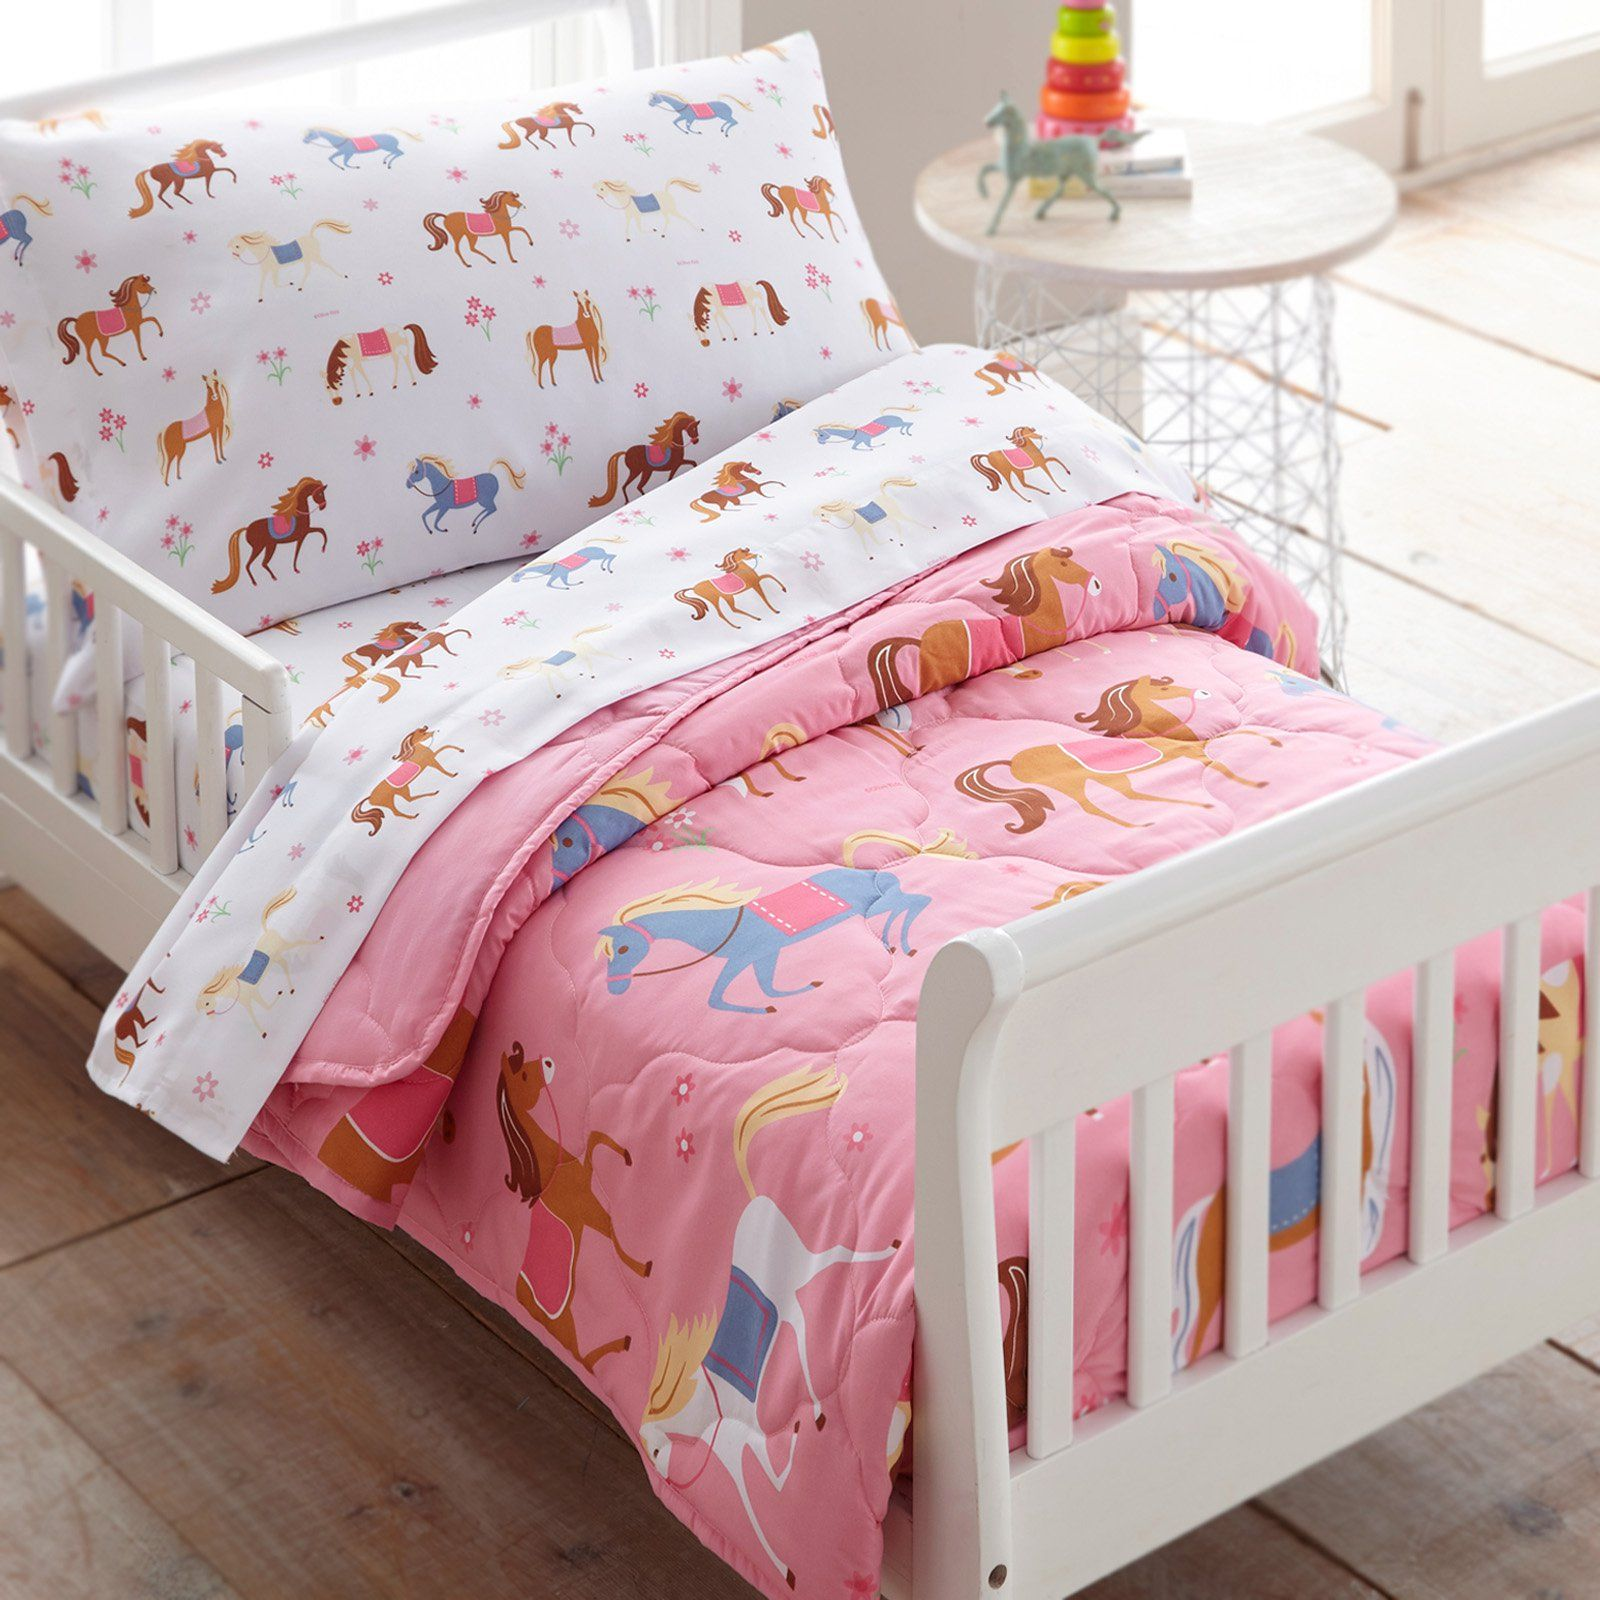 Horses 4 Piece Toddler Bed In A Bag By Olive Kids Toddler Bed Set Toddler Bed Toddler Sheets